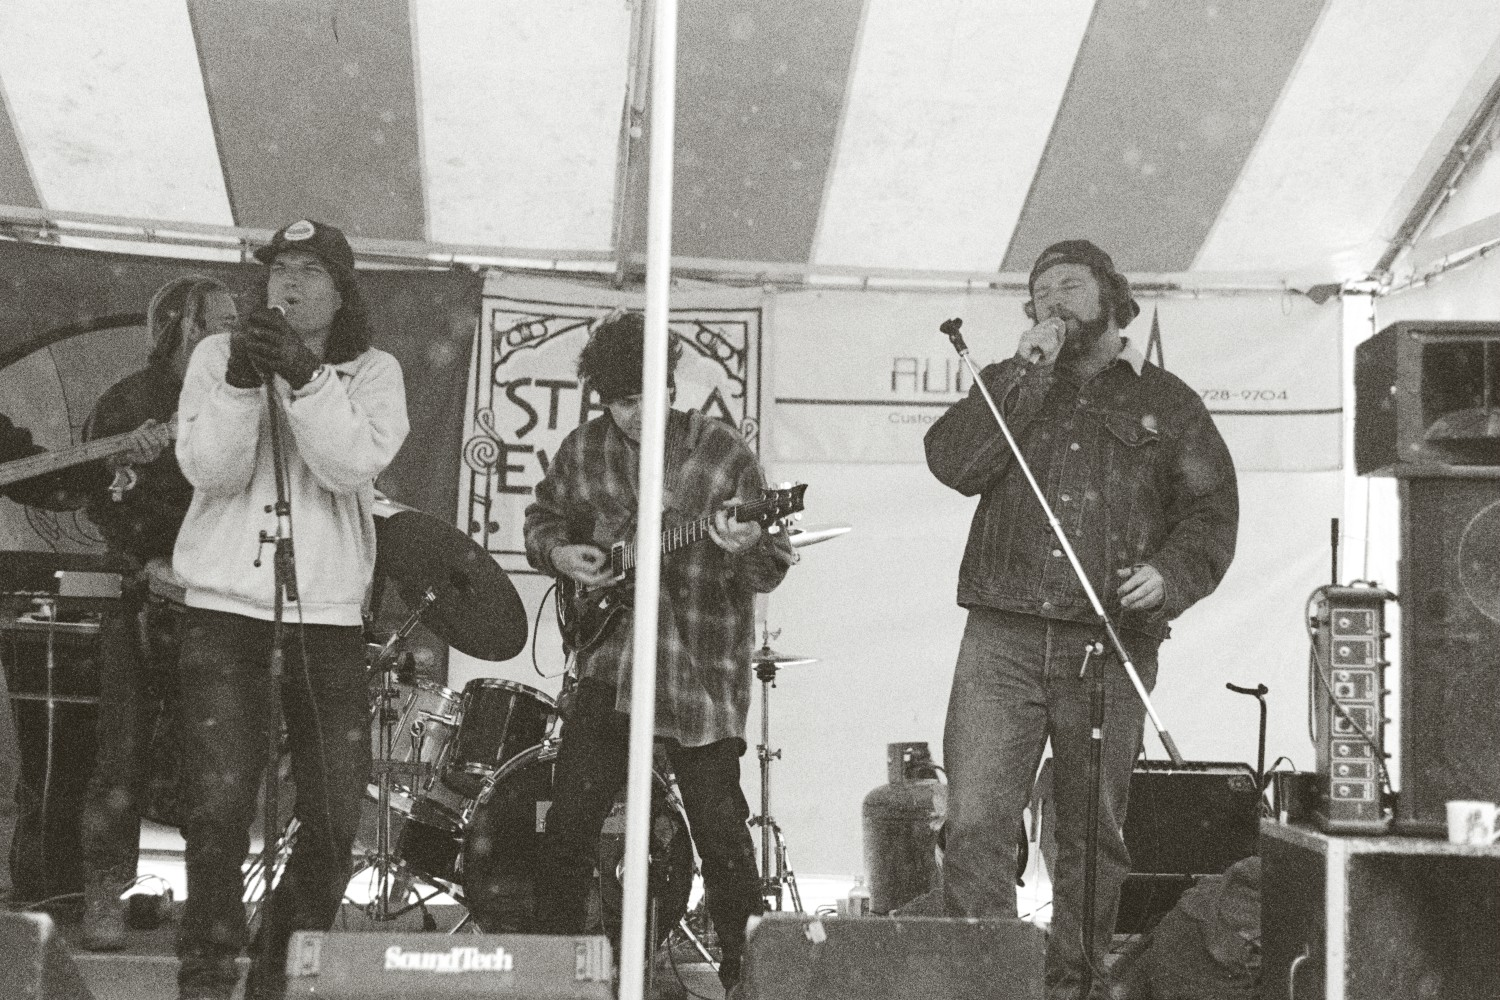 027-_Performing_with_The_Dude_of_Life_4-9-95_in_Telluride_CO